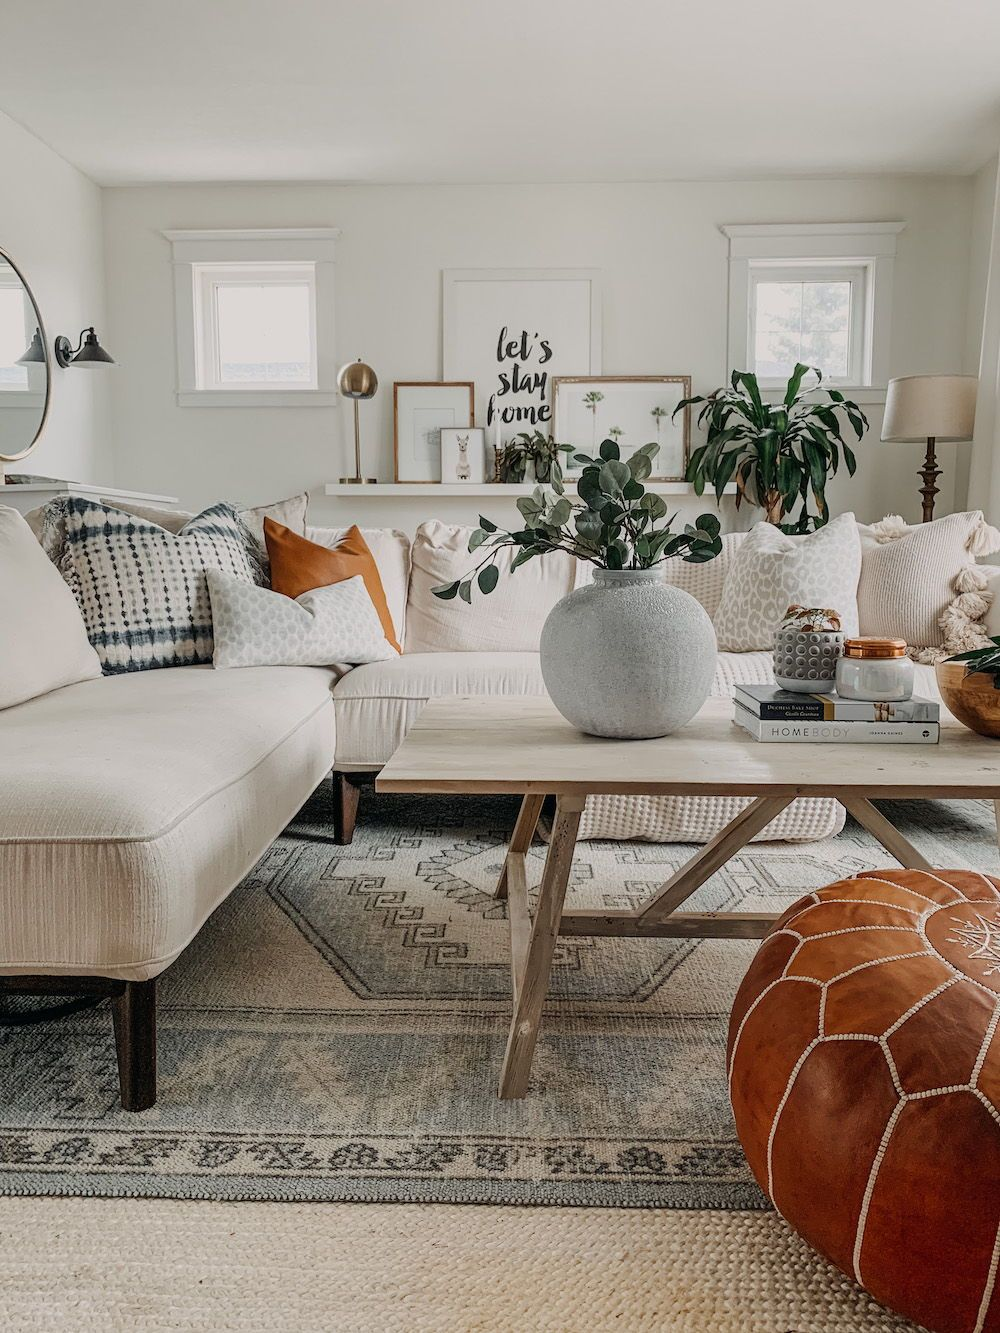 How To Style A Sectional The Beauty Revival How To Style Throw Pillows In 2020 Throw Pillows Living Room Living Room Decor Neutral Throw Pillow Styling #throws #for #living #room